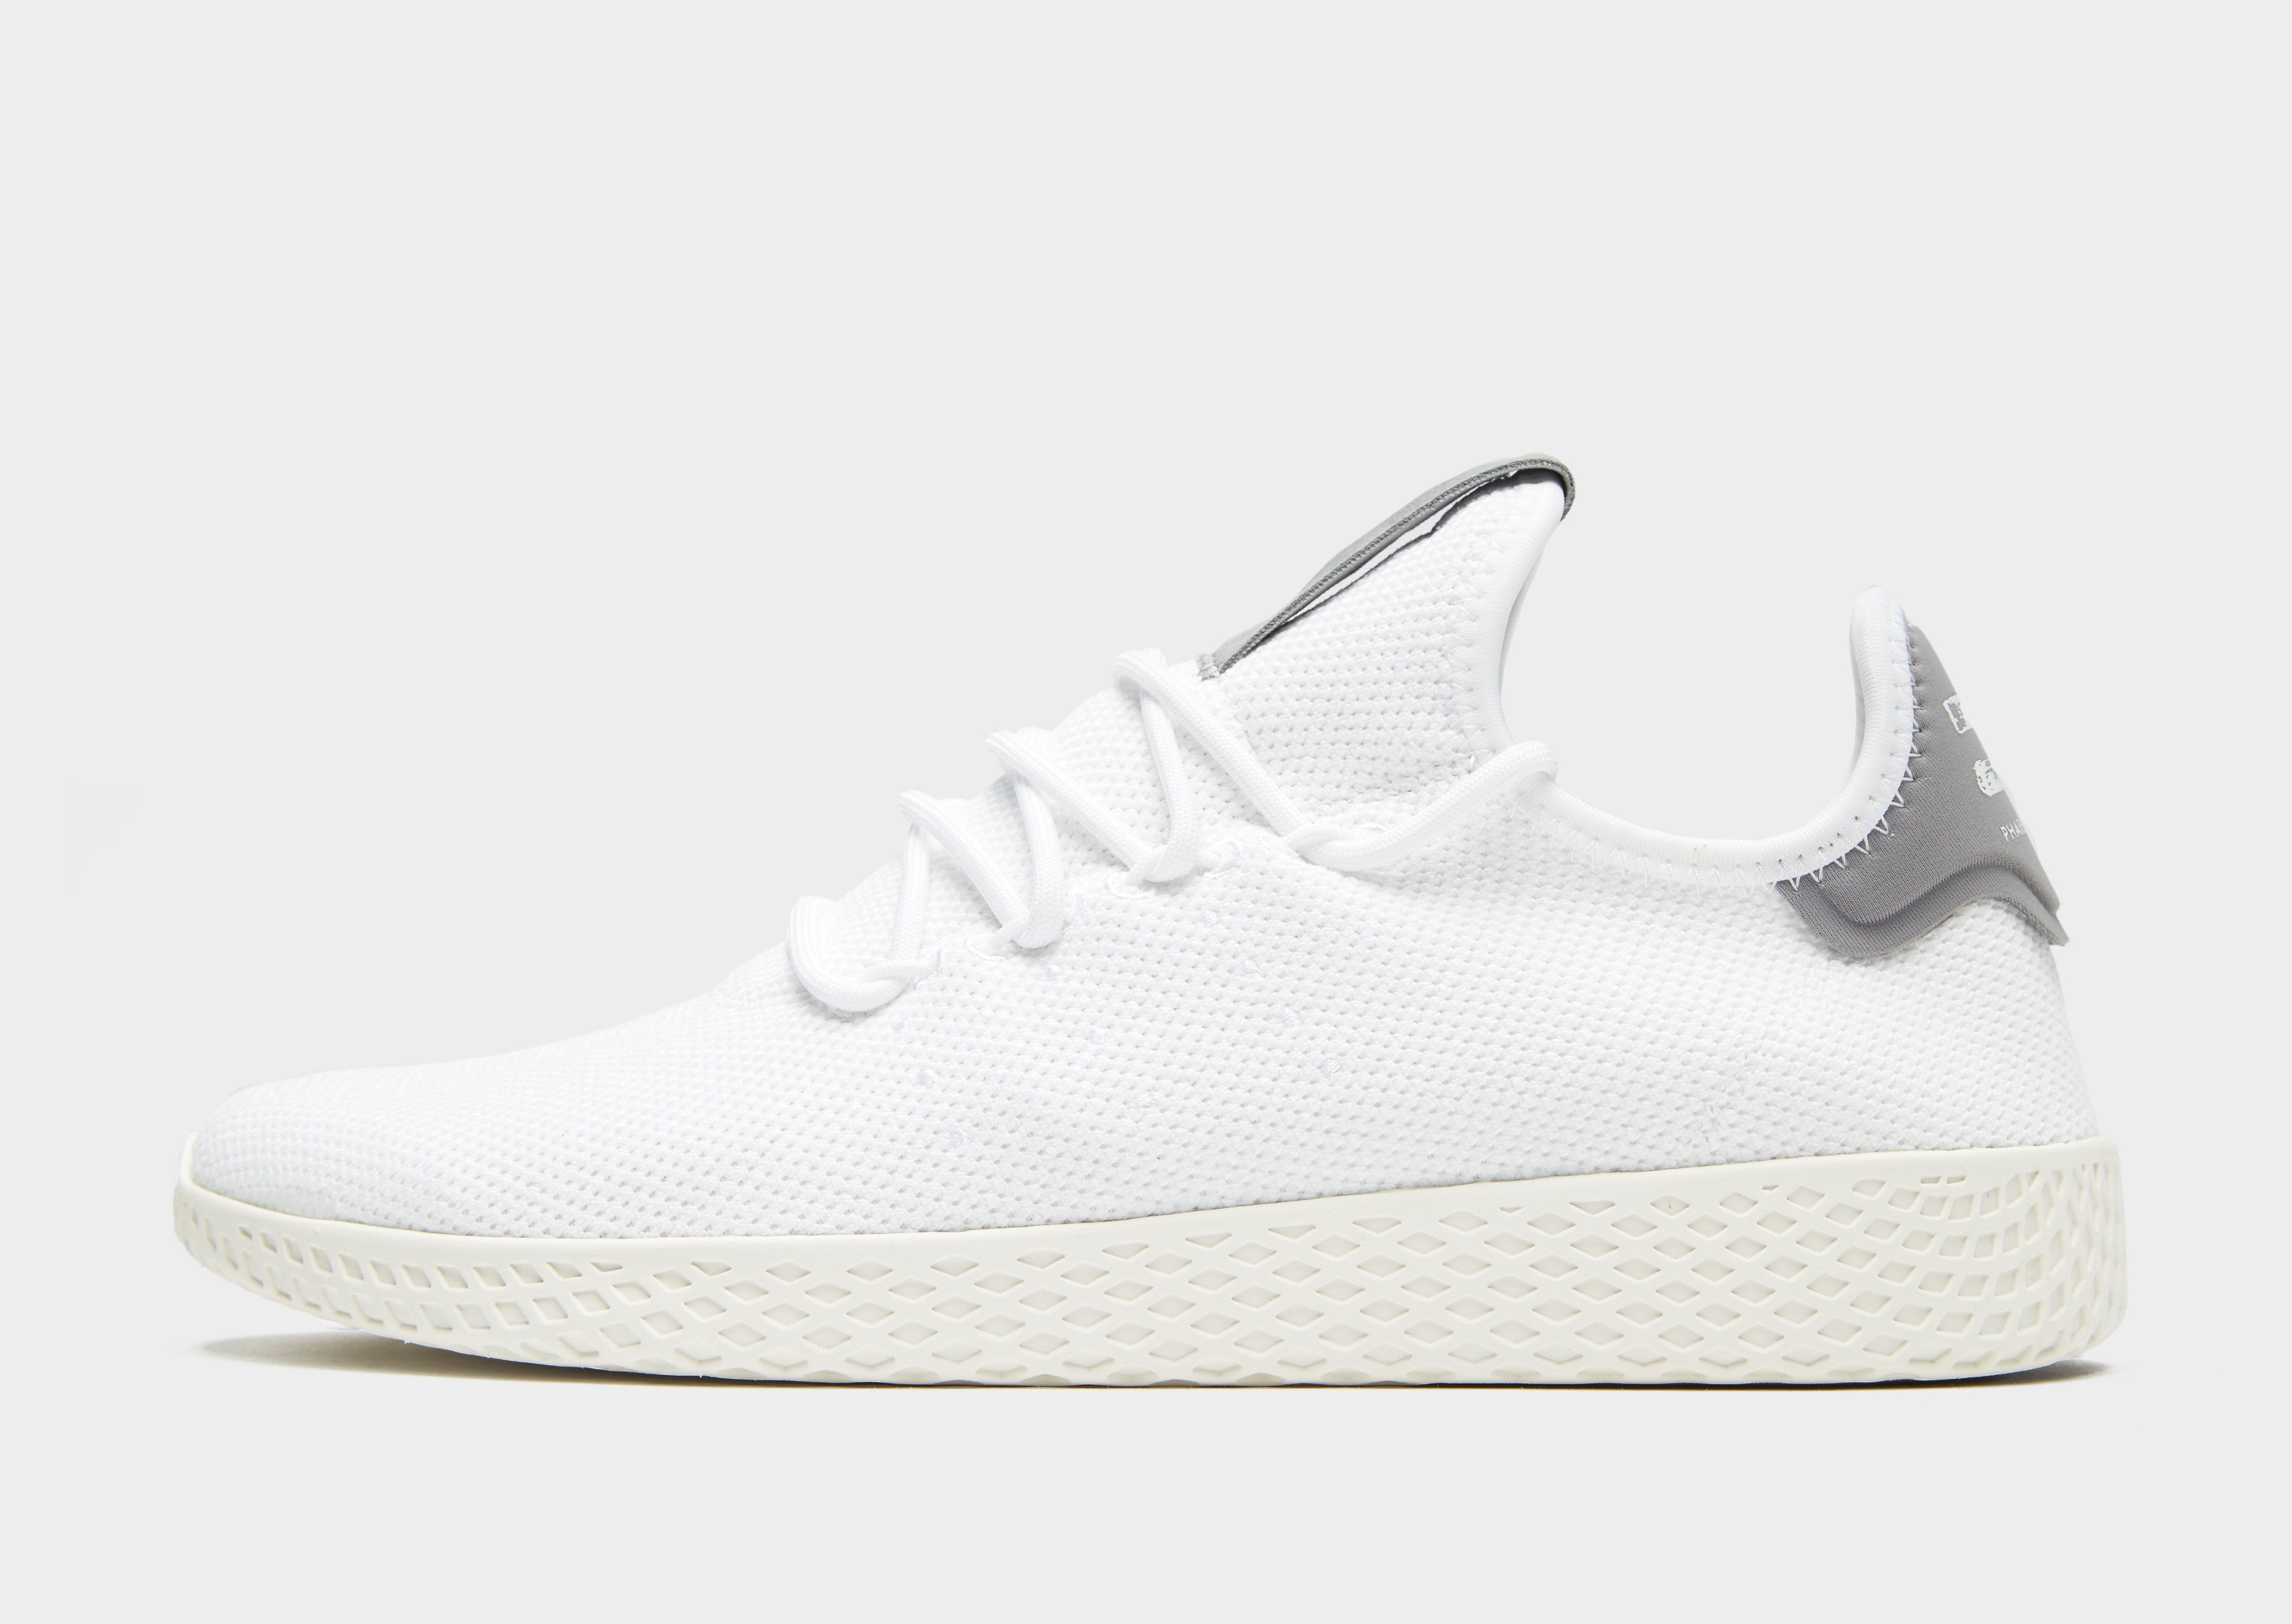 27e9f5145 adidas Originals x Pharrell Williams Tennis Hu